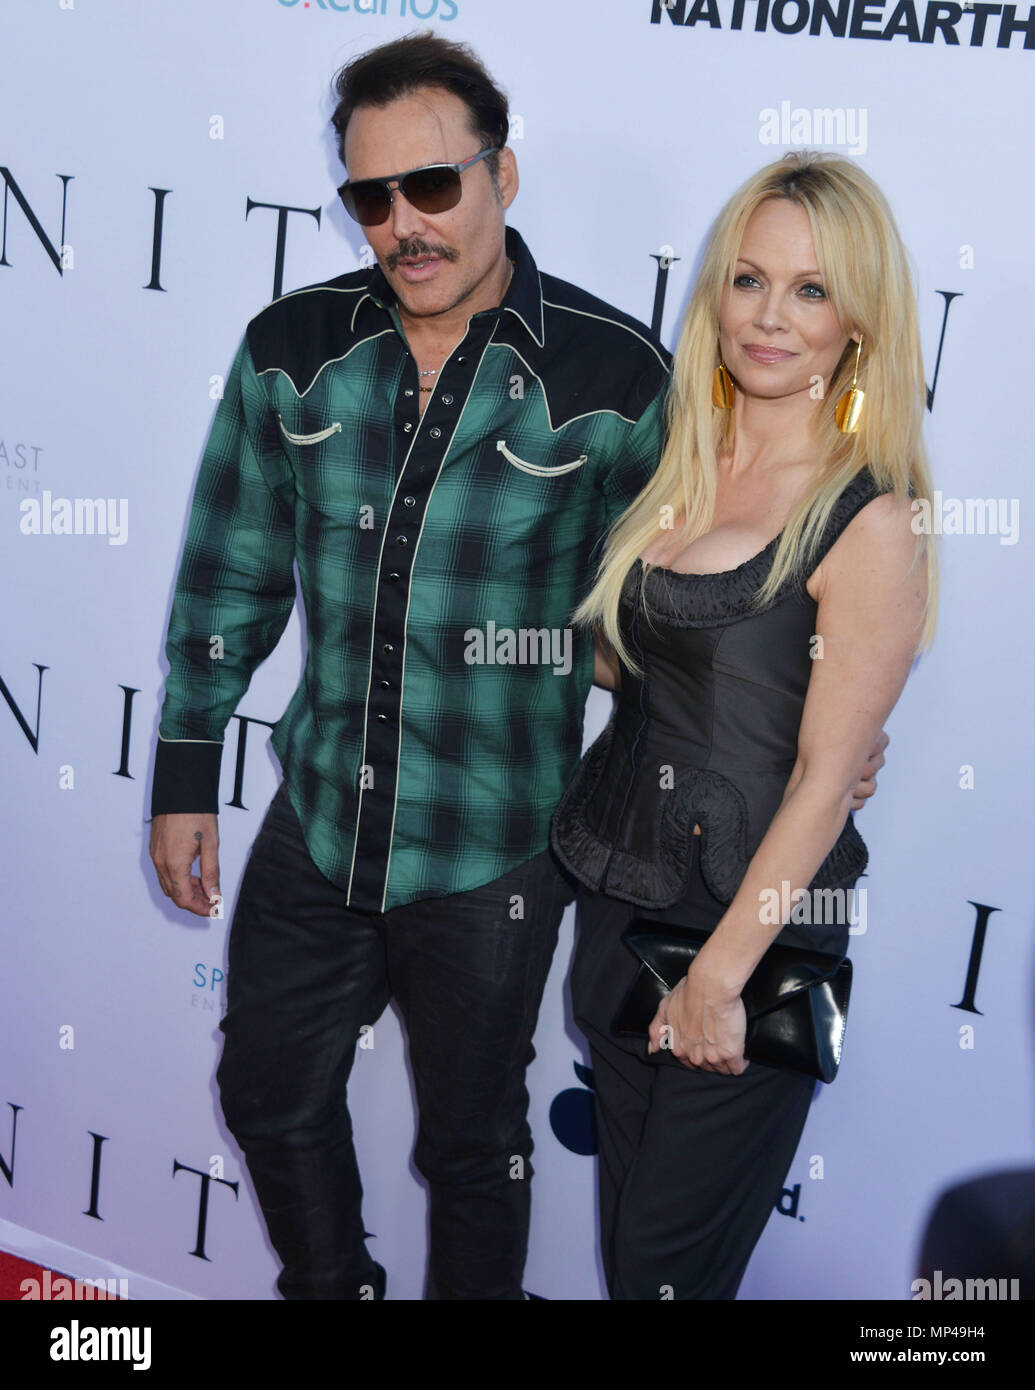 Pamela Anderson, David LaChapelle 009 at the Unity Premiere at the Director Guild Of America ( DGA ) Theatre in Los Angeles. June 24, 2015.Pamela Anderson, David LaChapelle 009 ------------- Red Carpet Event, Vertical, USA, Film Industry, Celebrities,  Photography, Bestof, Arts Culture and Entertainment, Topix Celebrities fashion /  Vertical, Best of, Event in Hollywood Life - California,  Red Carpet and backstage, USA, Film Industry, Celebrities,  movie celebrities, TV celebrities, Music celebrities, Photography, Bestof, Arts Culture and Entertainment,  Topix, vertical,  family from from the  - Stock Image